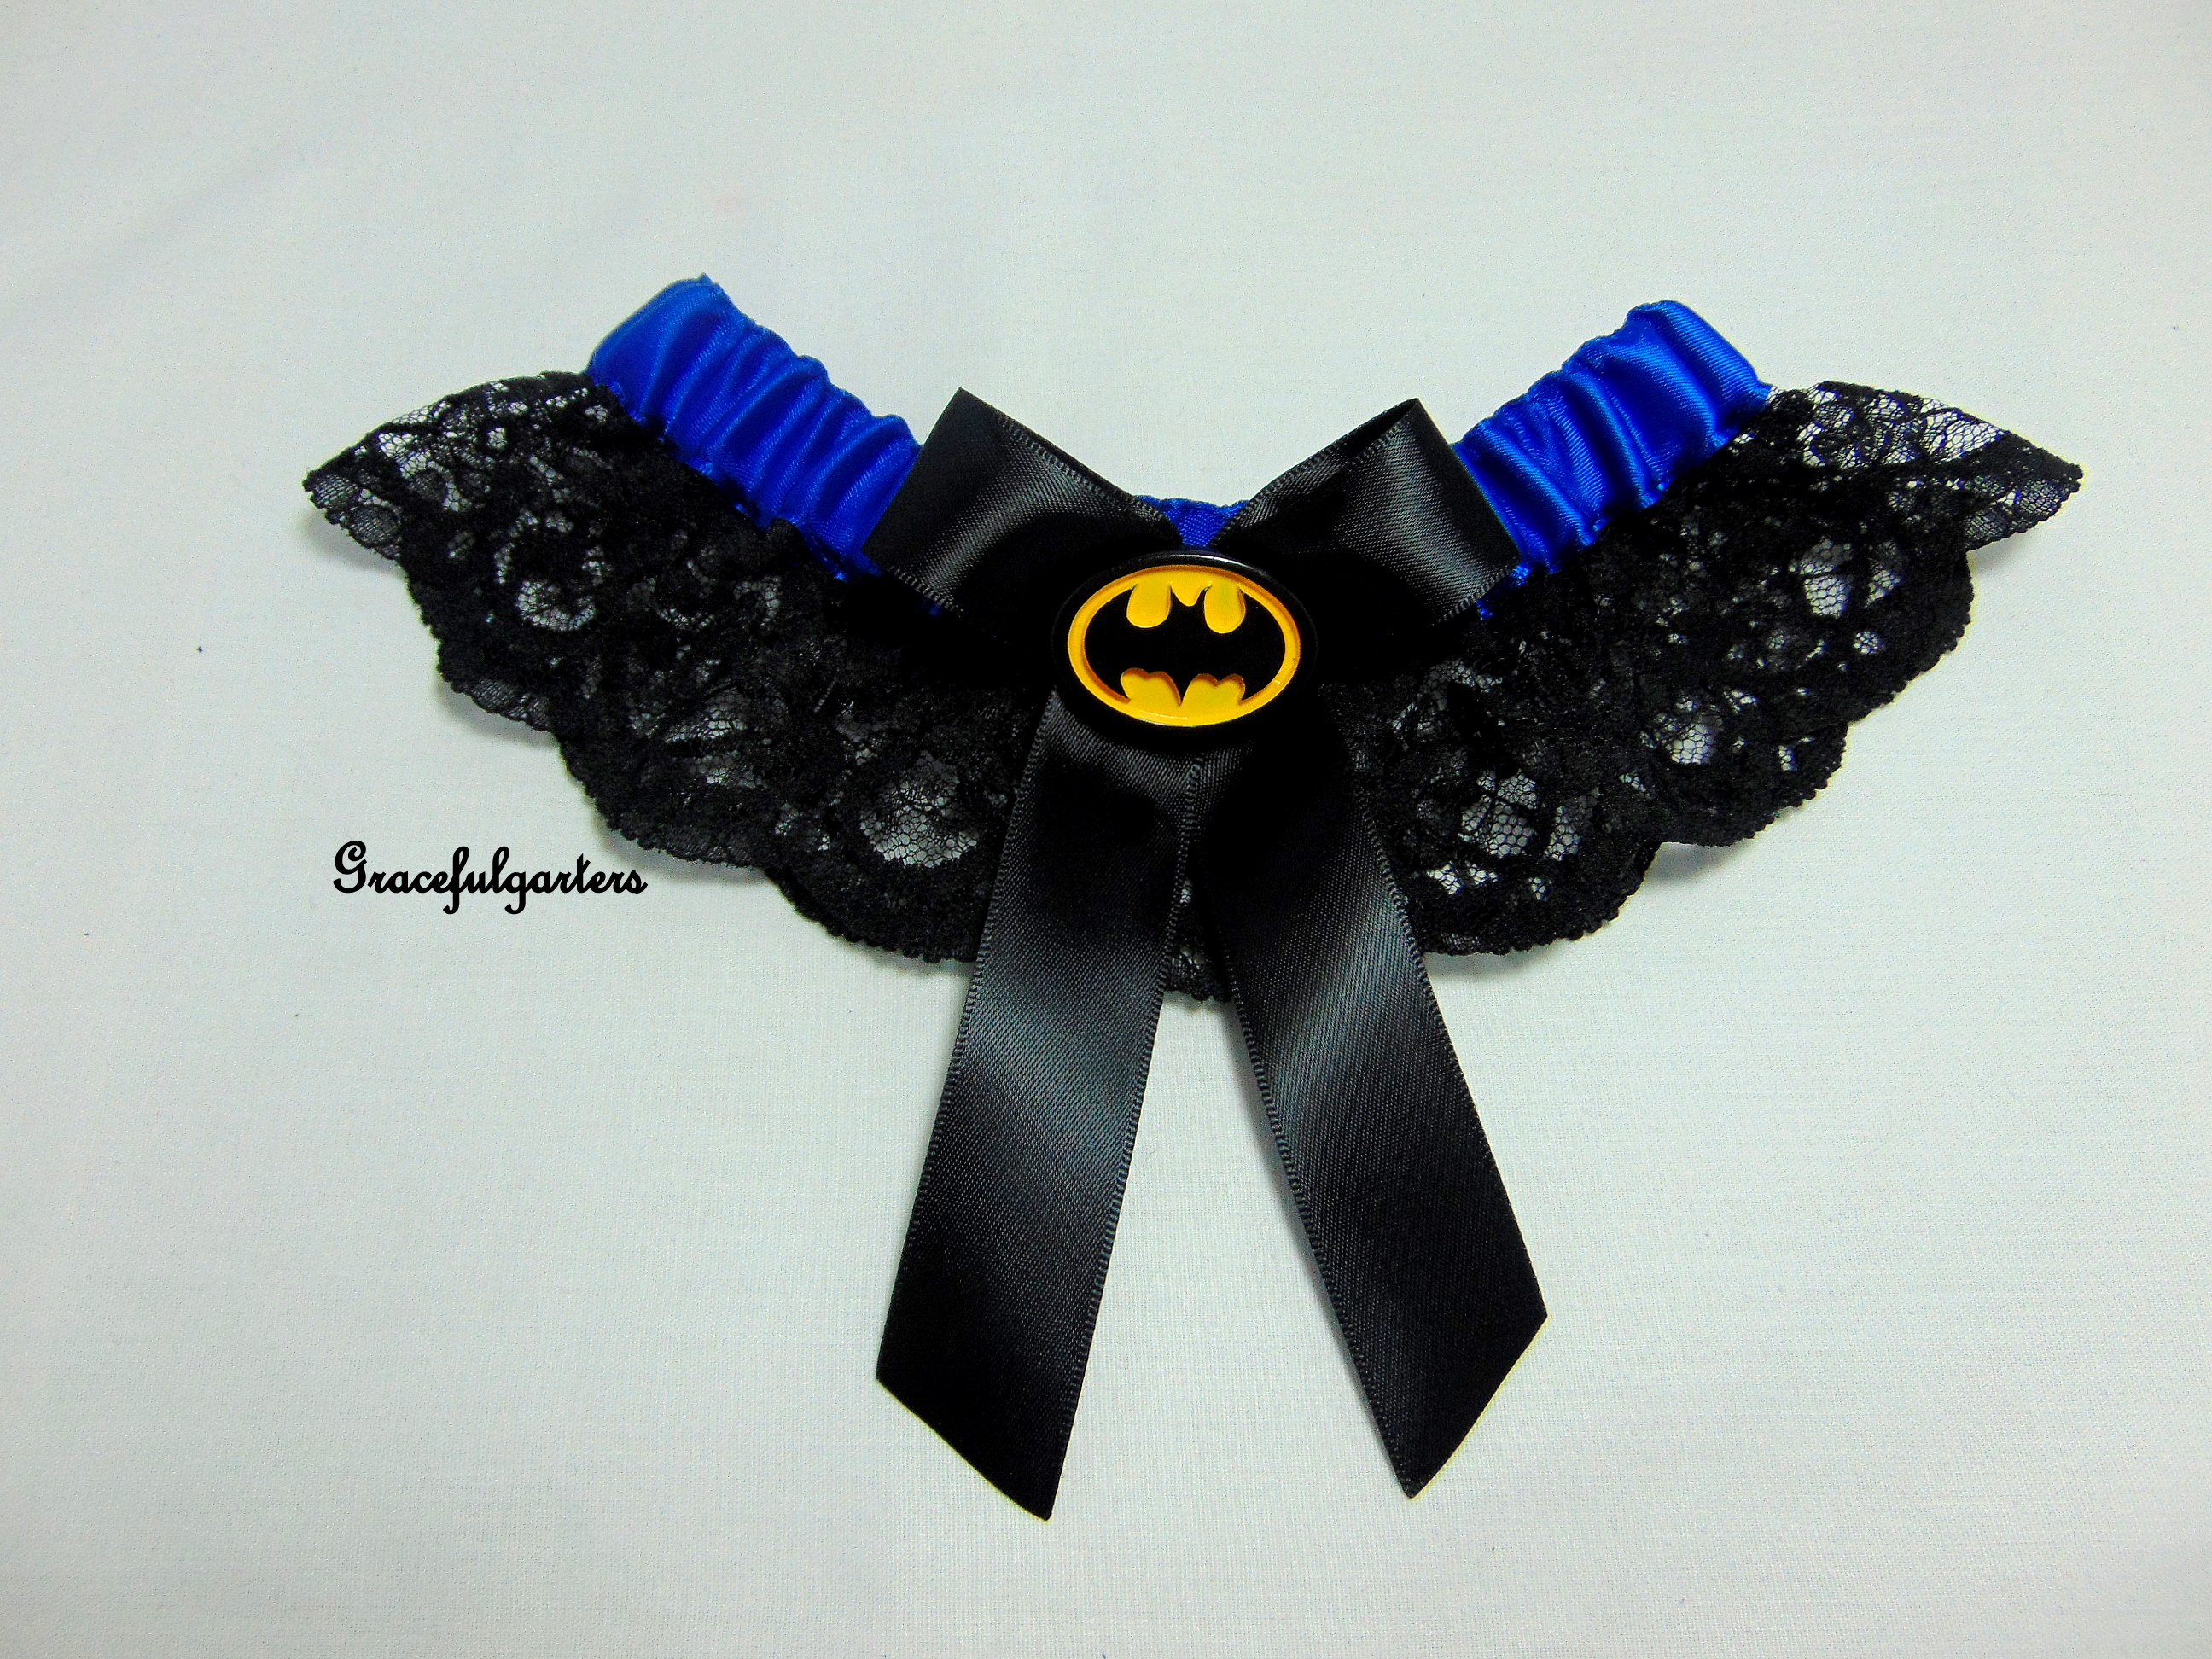 Royal Blue Batman Lace Bridal Wedding Garter